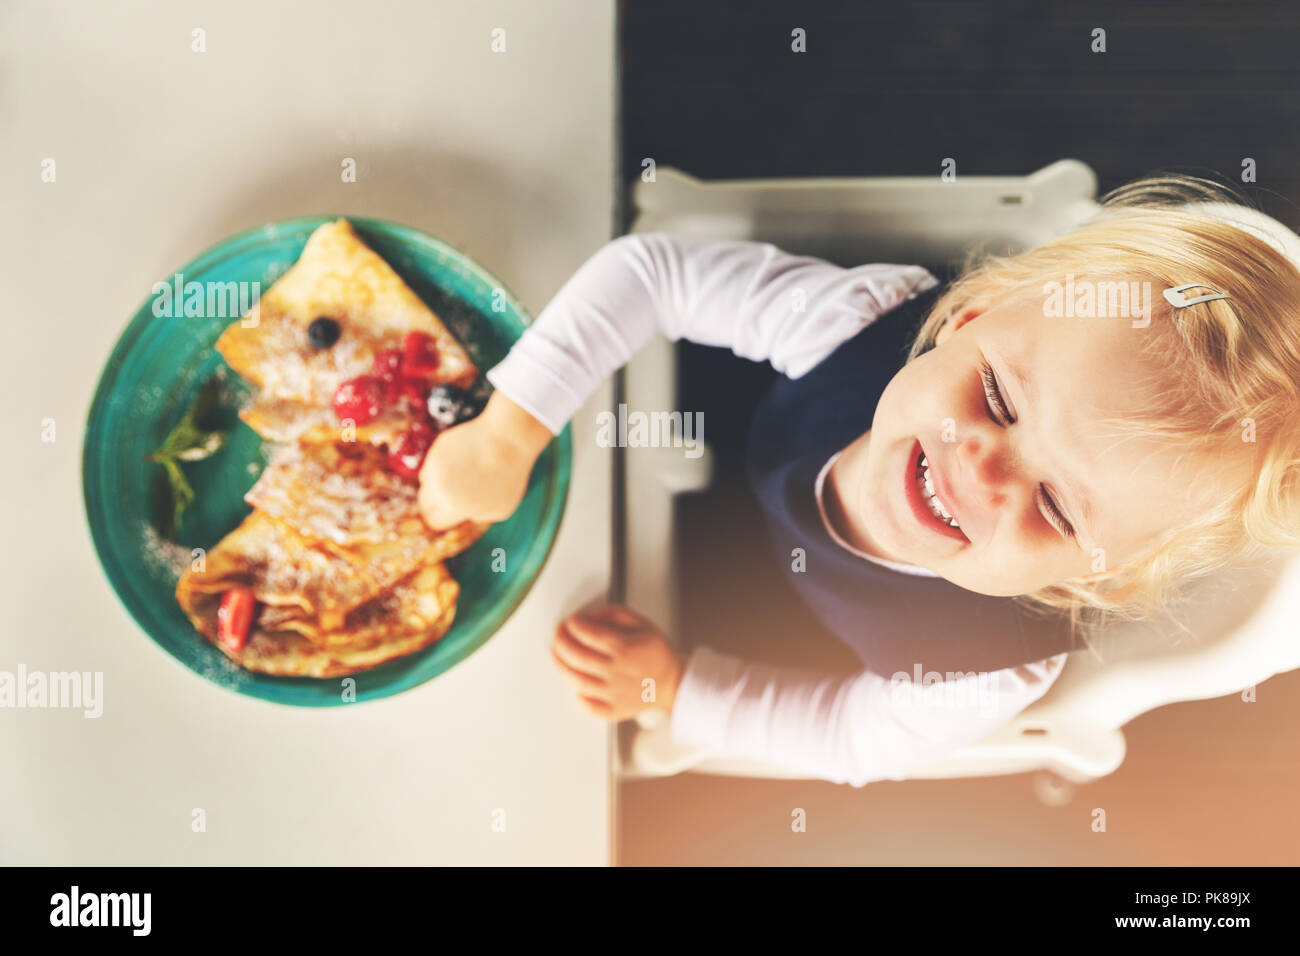 Funny cute little girl eating pancakes aux fruits rouges Photo Stock